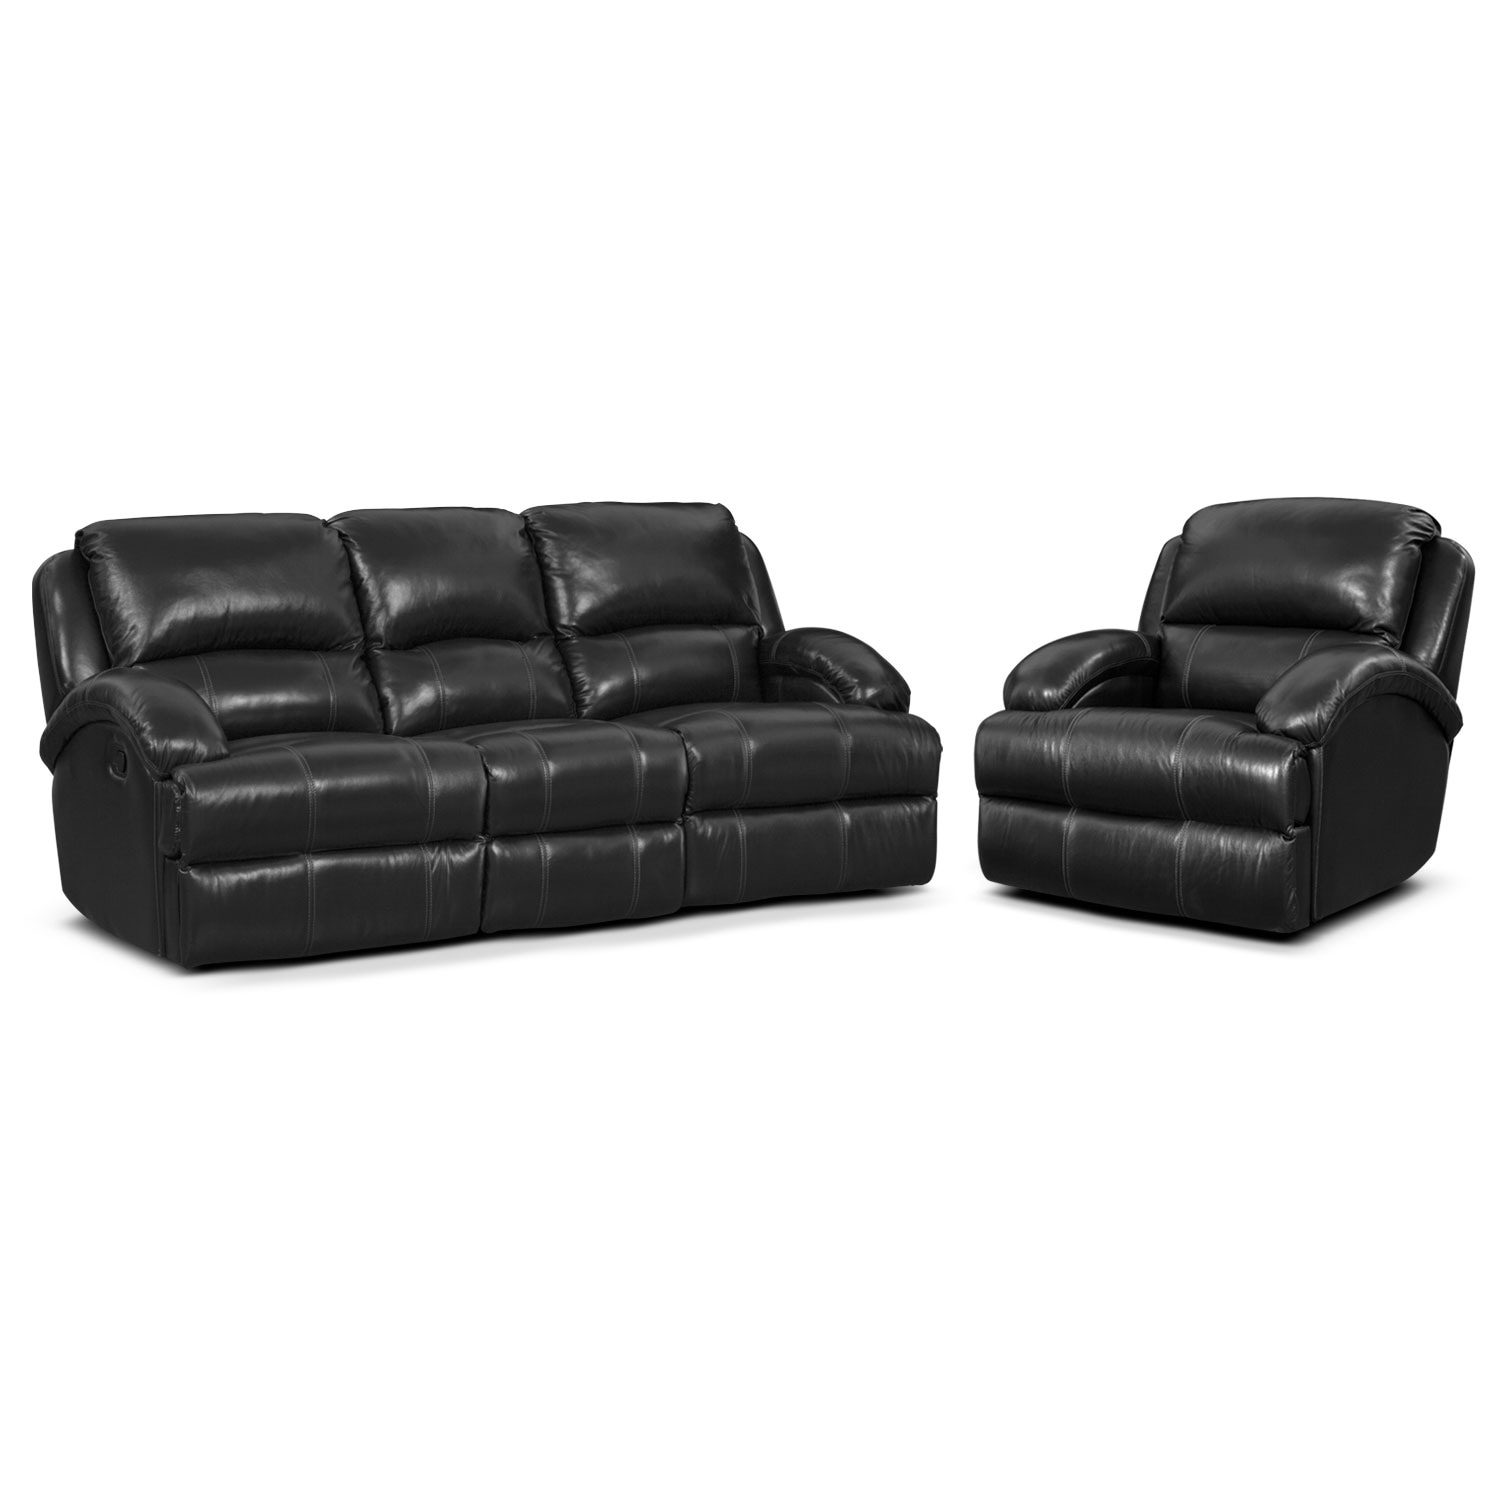 Nolan Dual Reclining Sofa and Glider Recliner Set - Black